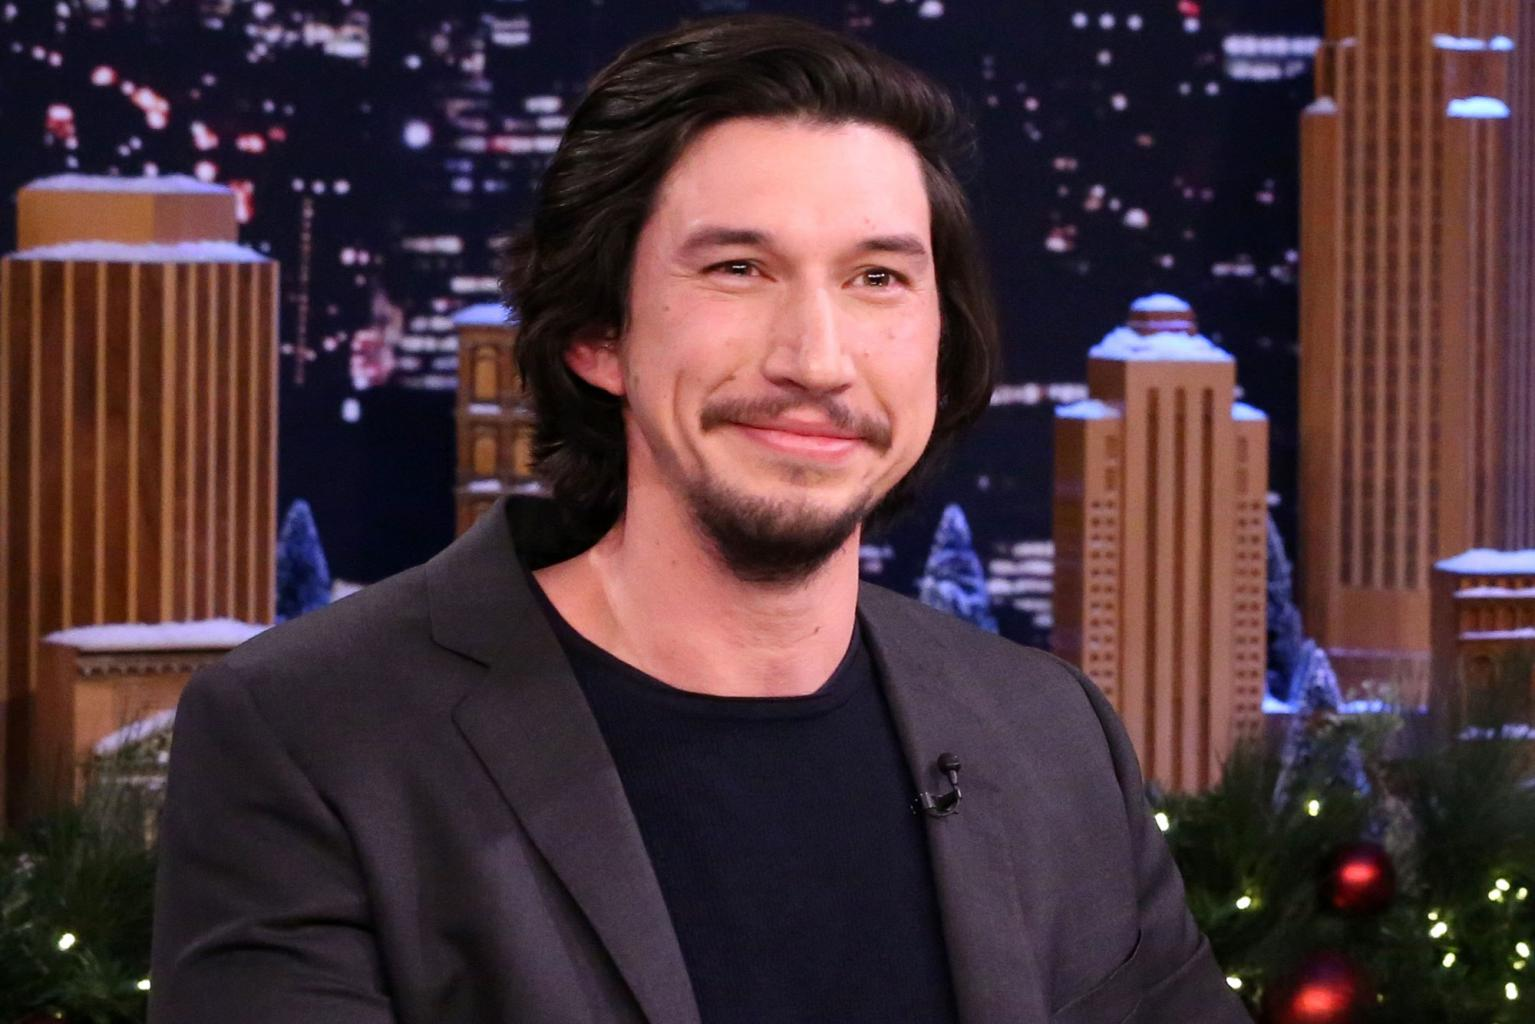 Adam Driver Gives Out Toys of His Star Wars Character Kylo Ren to Friends for Christmas